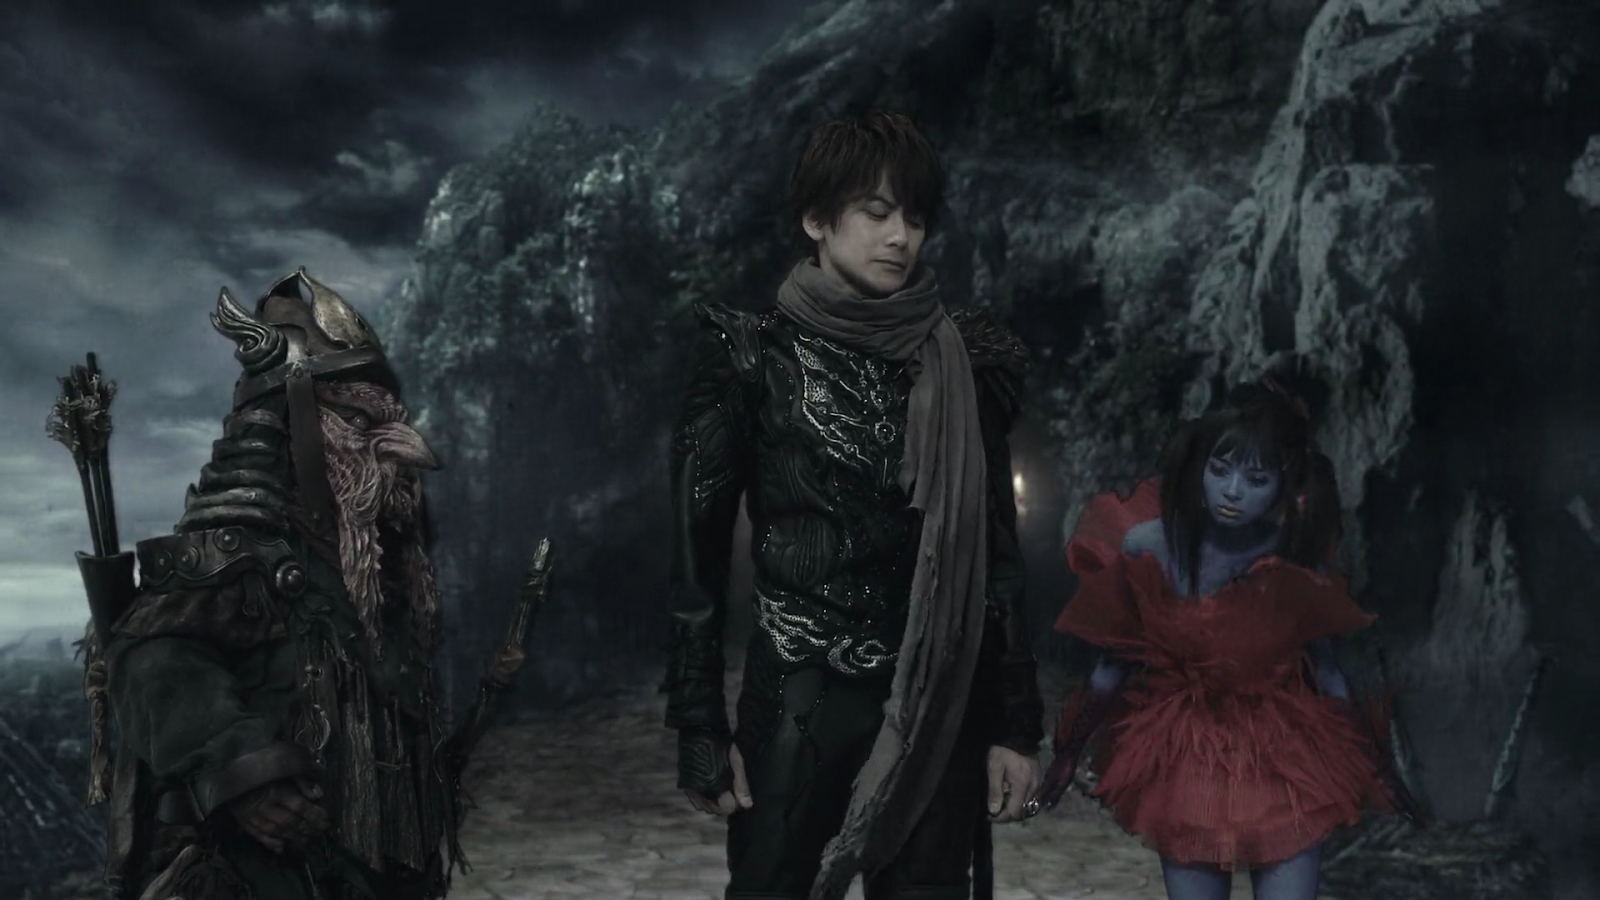 Kouga's new friends in the movie